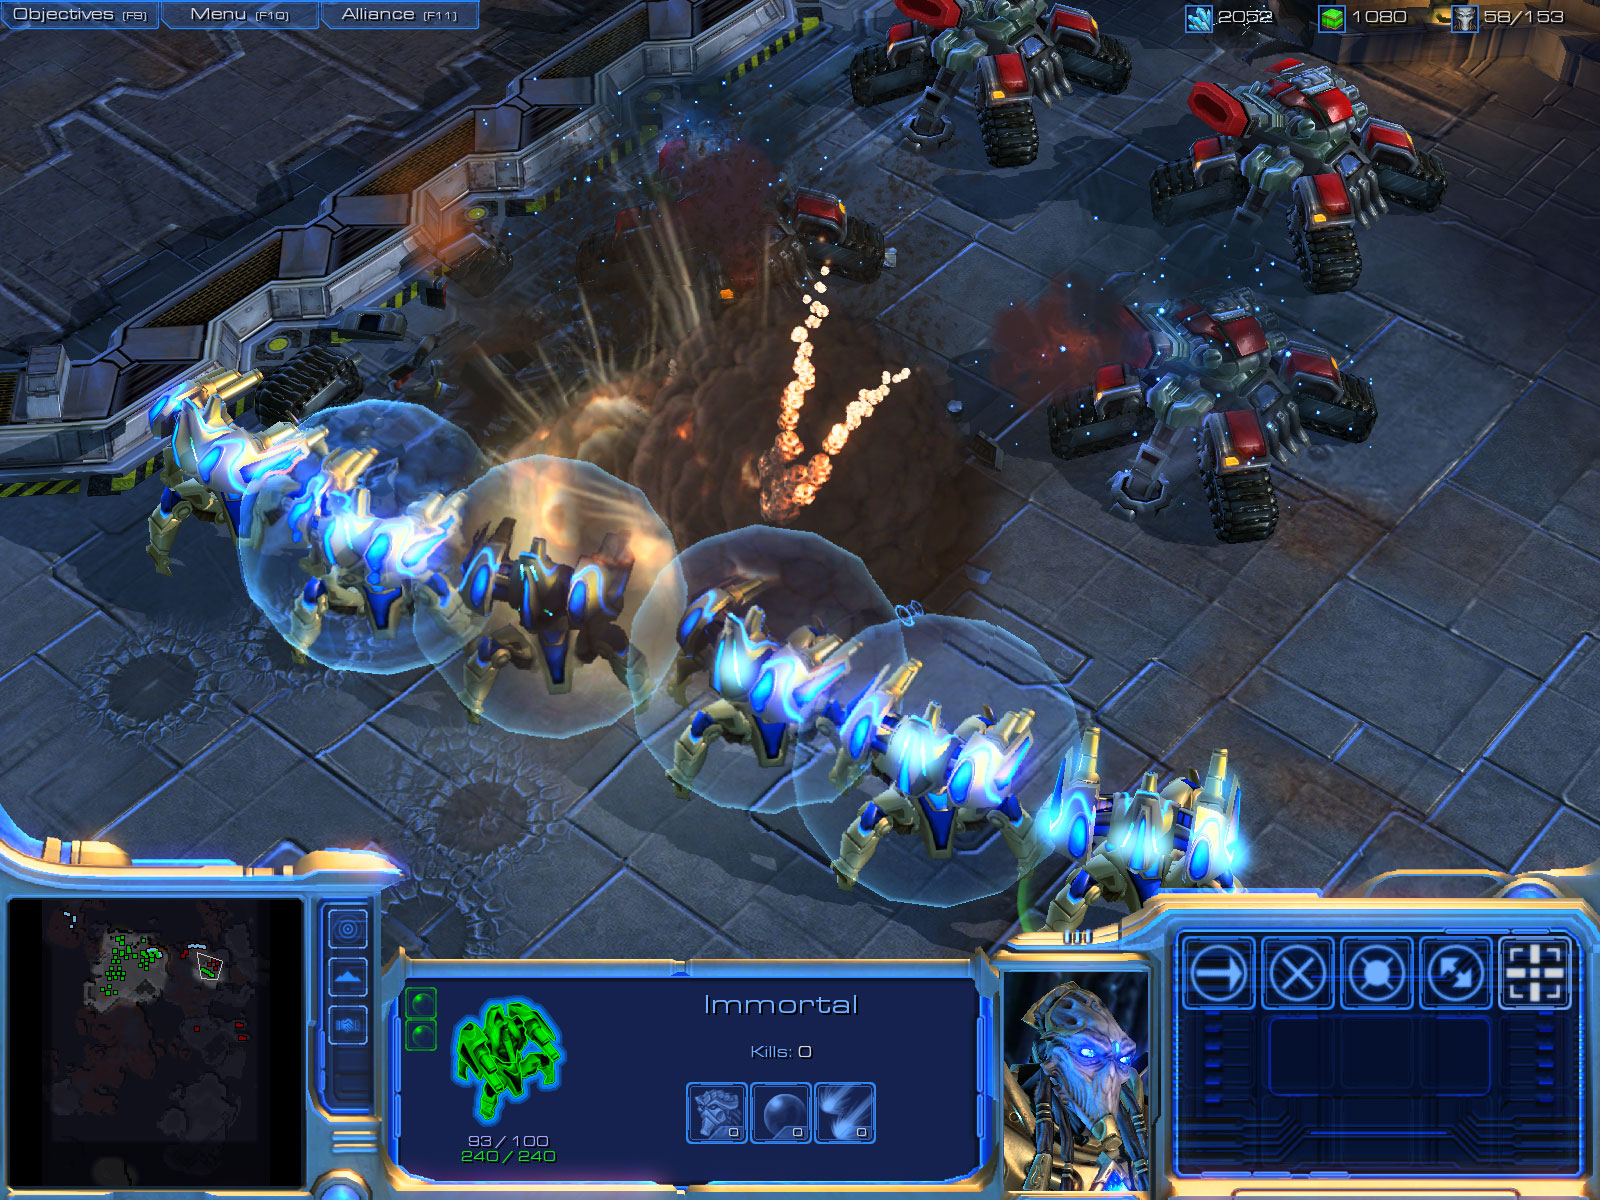 【国服】星际争霸2:虫群之心 Starcraft II: Heart of the Swarm for Mac